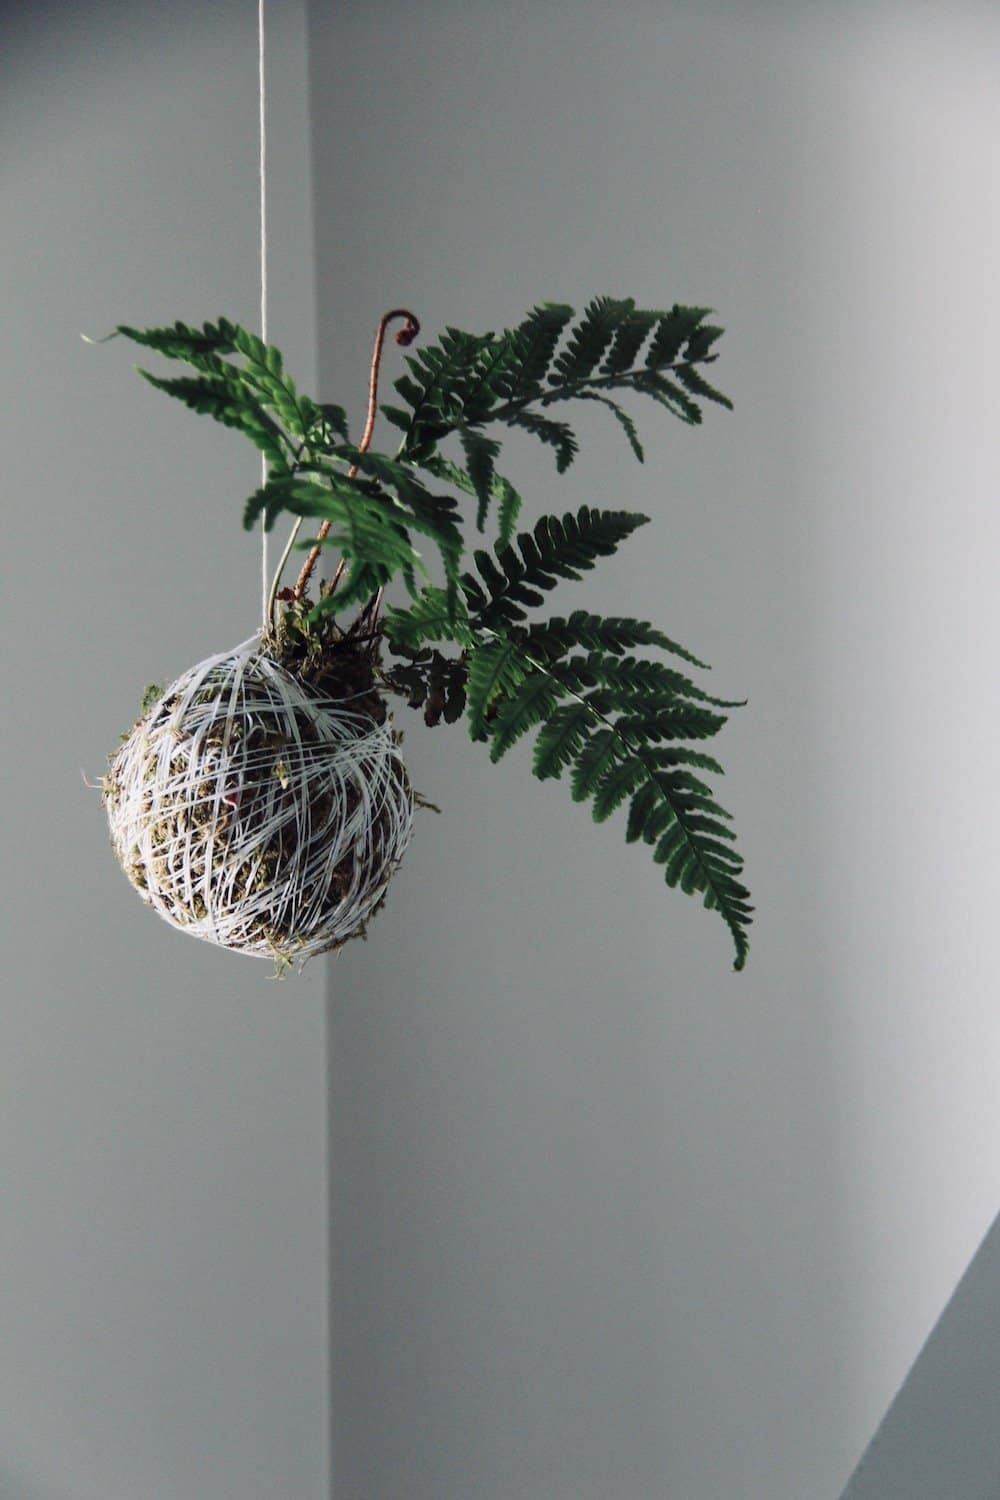 SO making this fern kokedama this weekend! I love hanging string gardens and this is perfect for my ensuite bathroom #houseplants #stringgardens #kokedama #bathroomplants